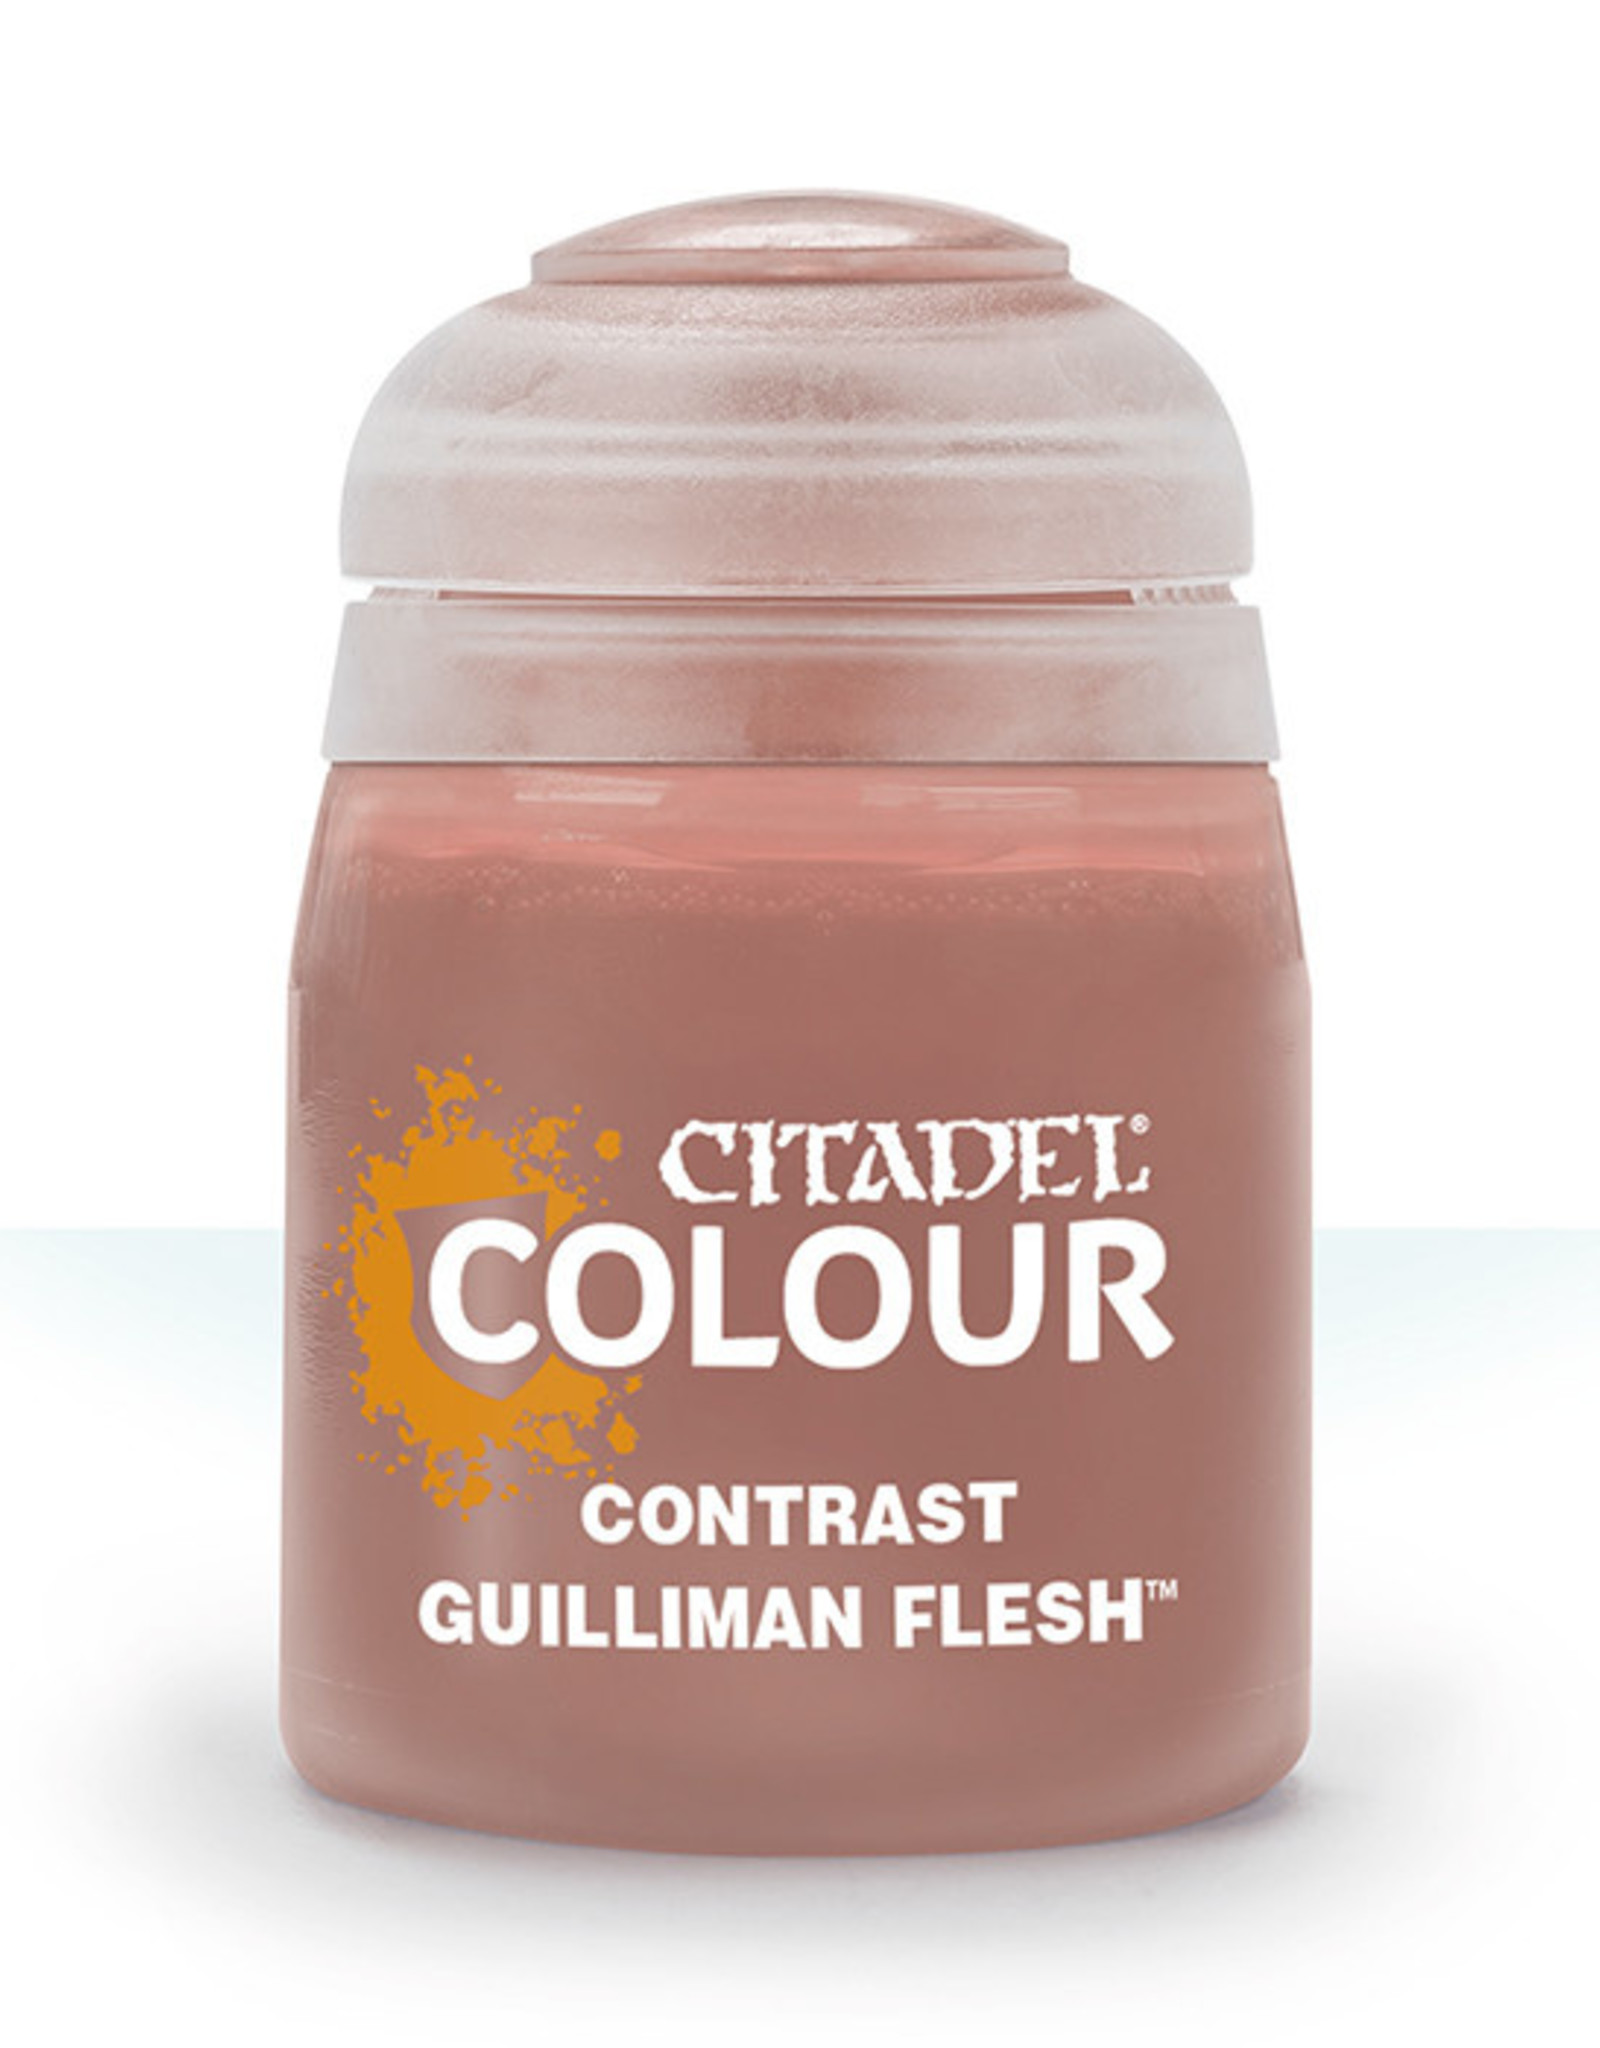 Citadel Citadel Colour: Contrast - Guilliman Flesh